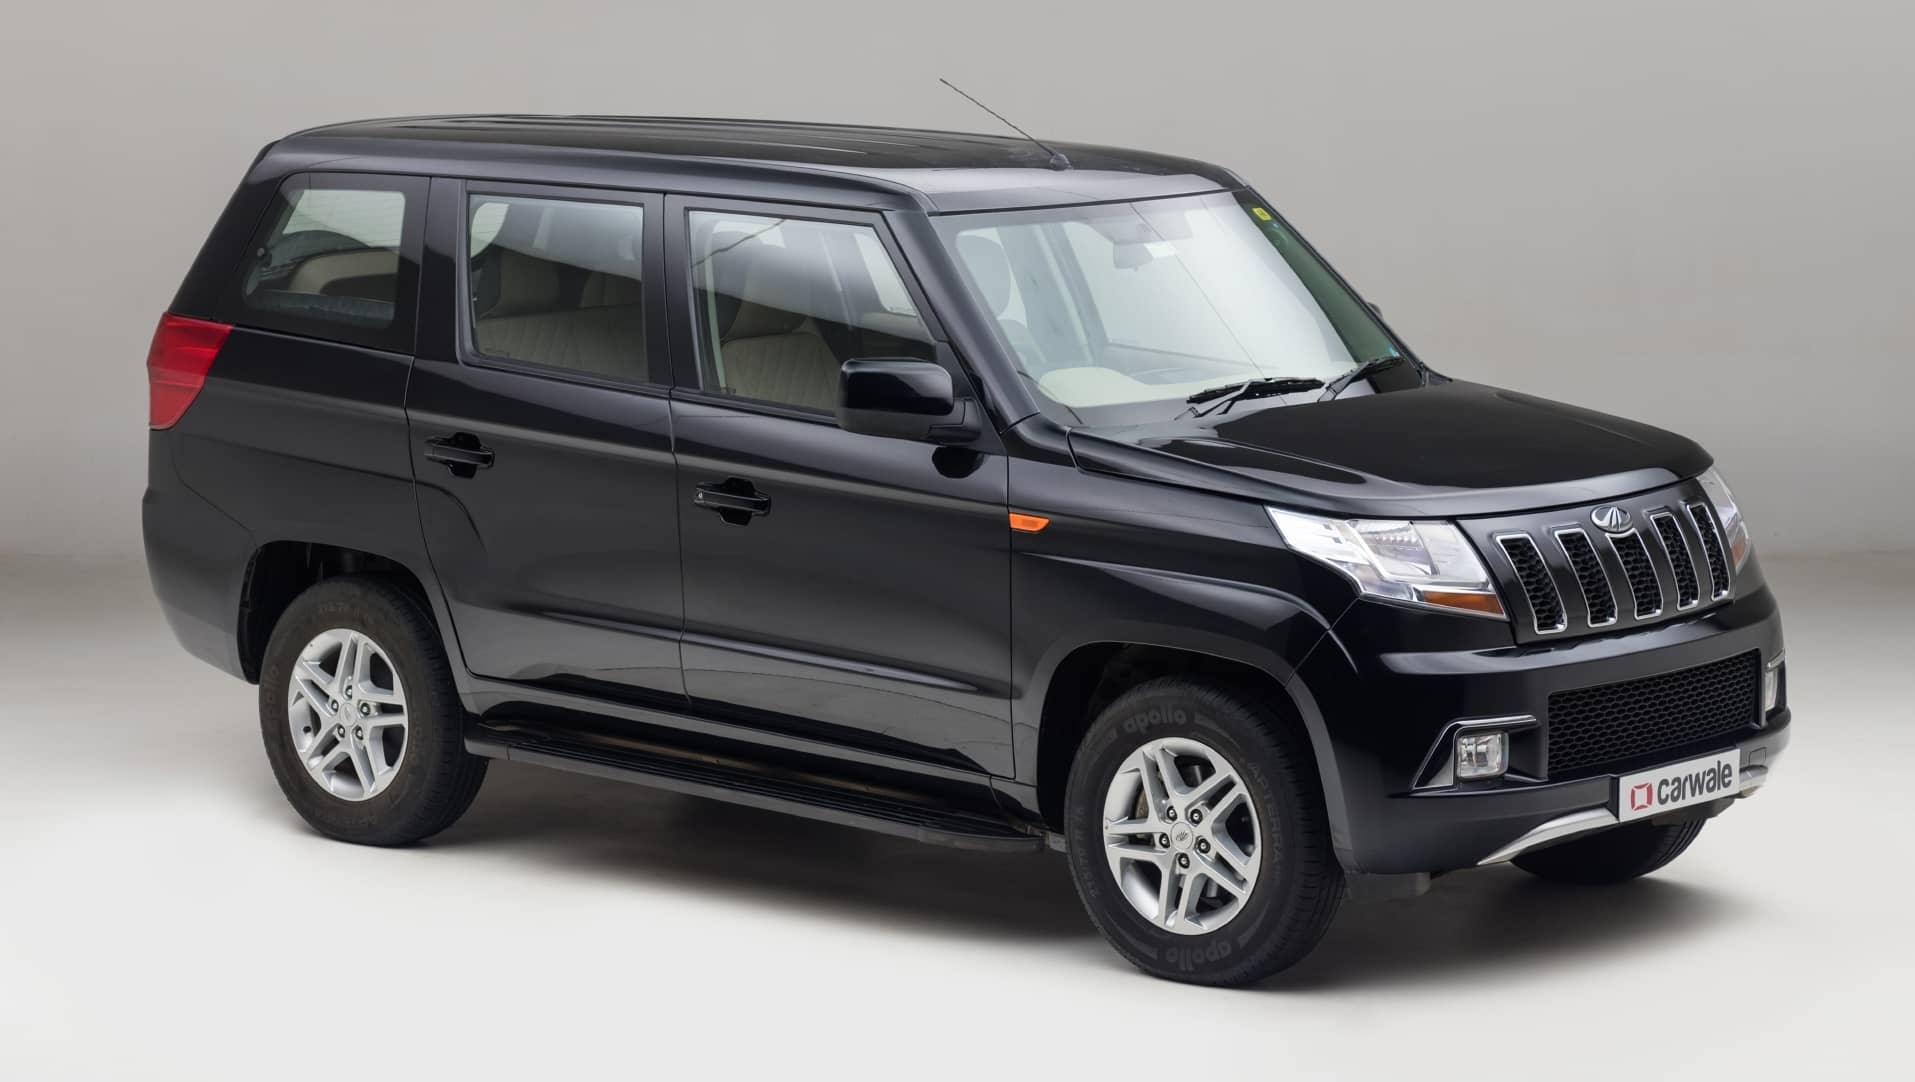 Top 9 10 Seater Vehicles In India List Of 9 10 Seater Cars In India